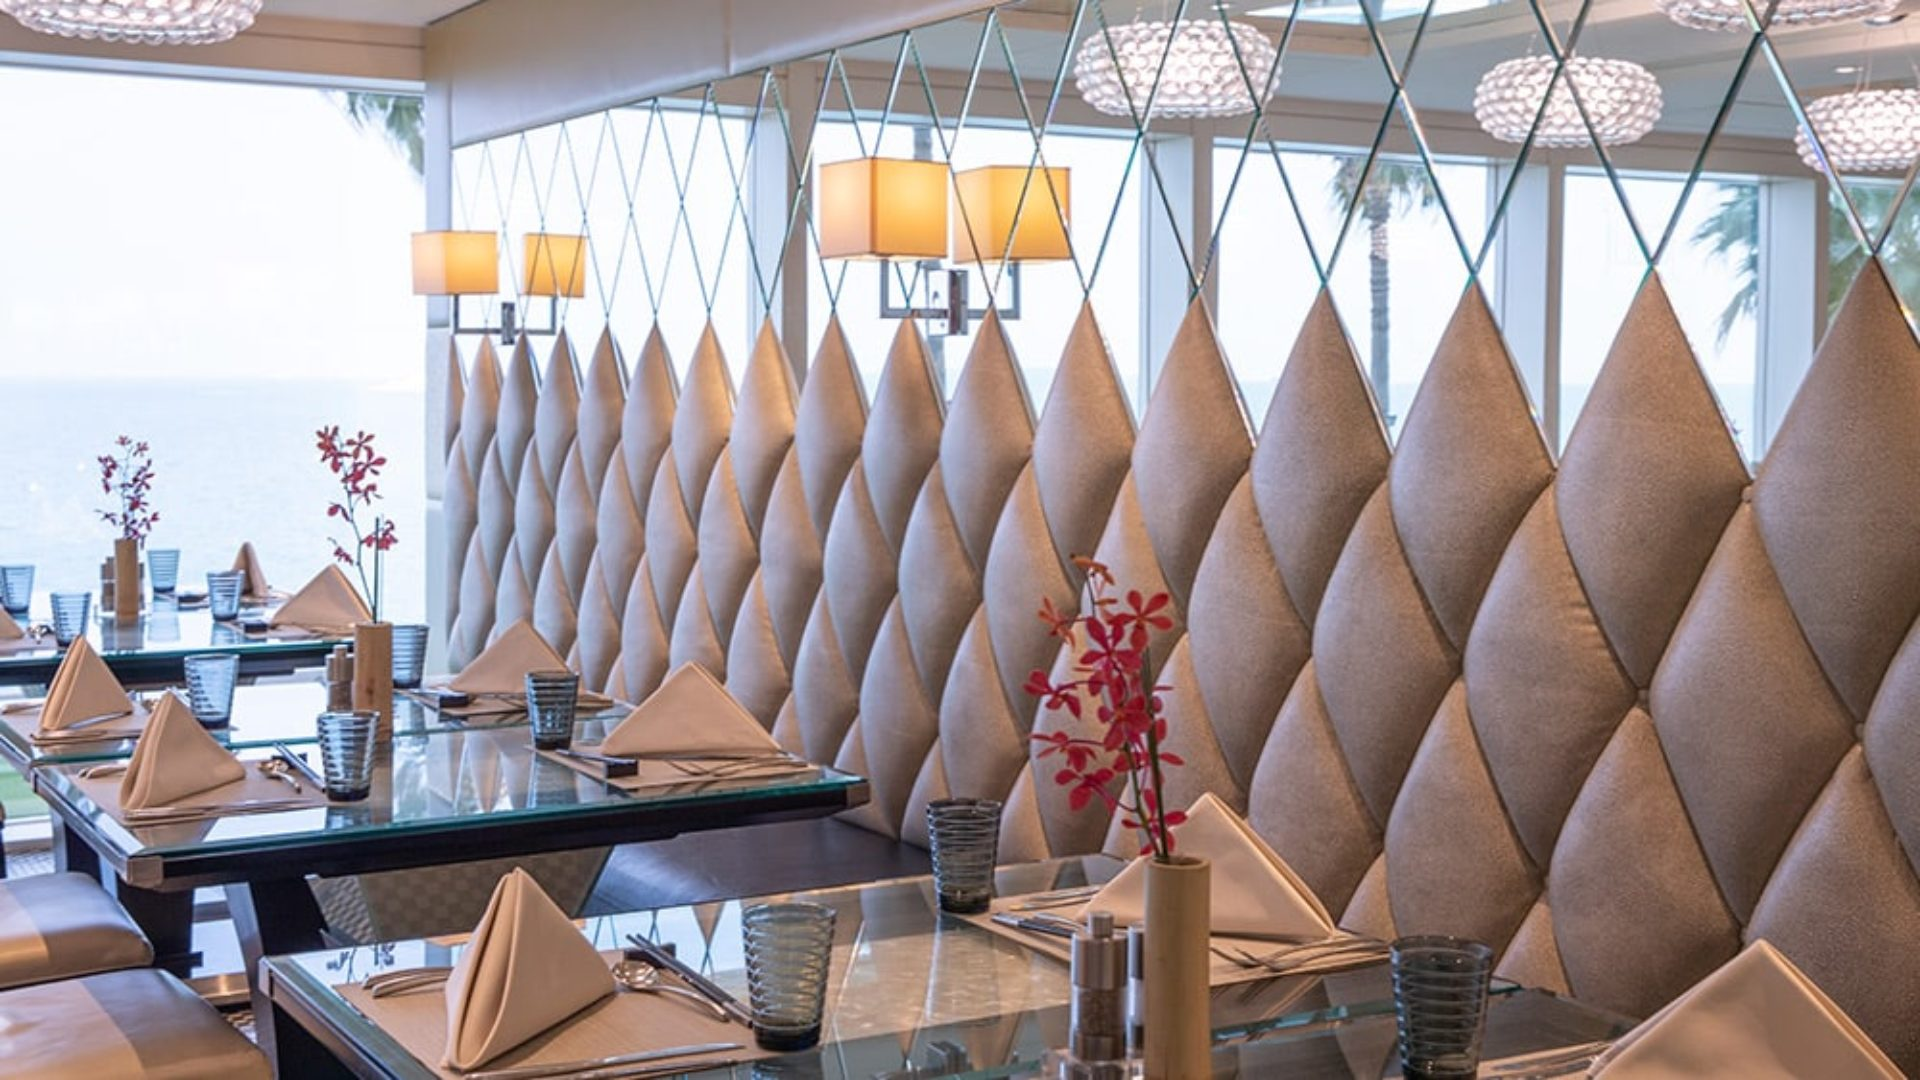 Tables at Junsui Restaurant at the Burj Al Arab